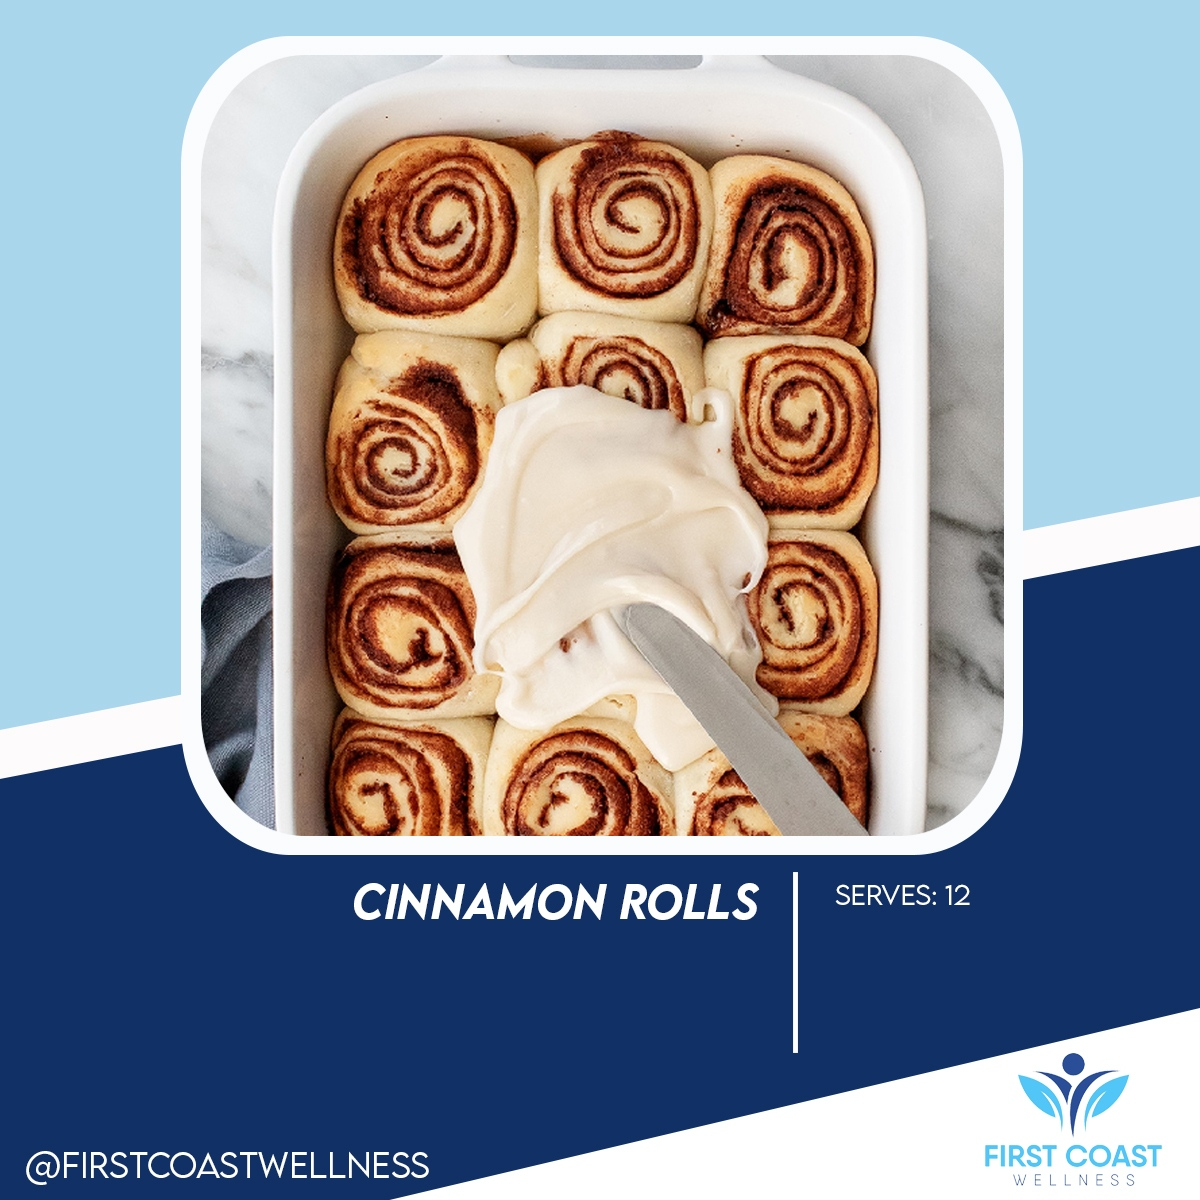 Want some Cinnamon Rolls for dessert? 😉 Here's the recipe for you! 👌 Follow us on Instagram @firstcoastwellness for more content like this ☑️  #fitness #gym #workout #fitnessmotivation #motivation #fit #bodybuilding #love #training #health #lifestyle #instagood #fitfam